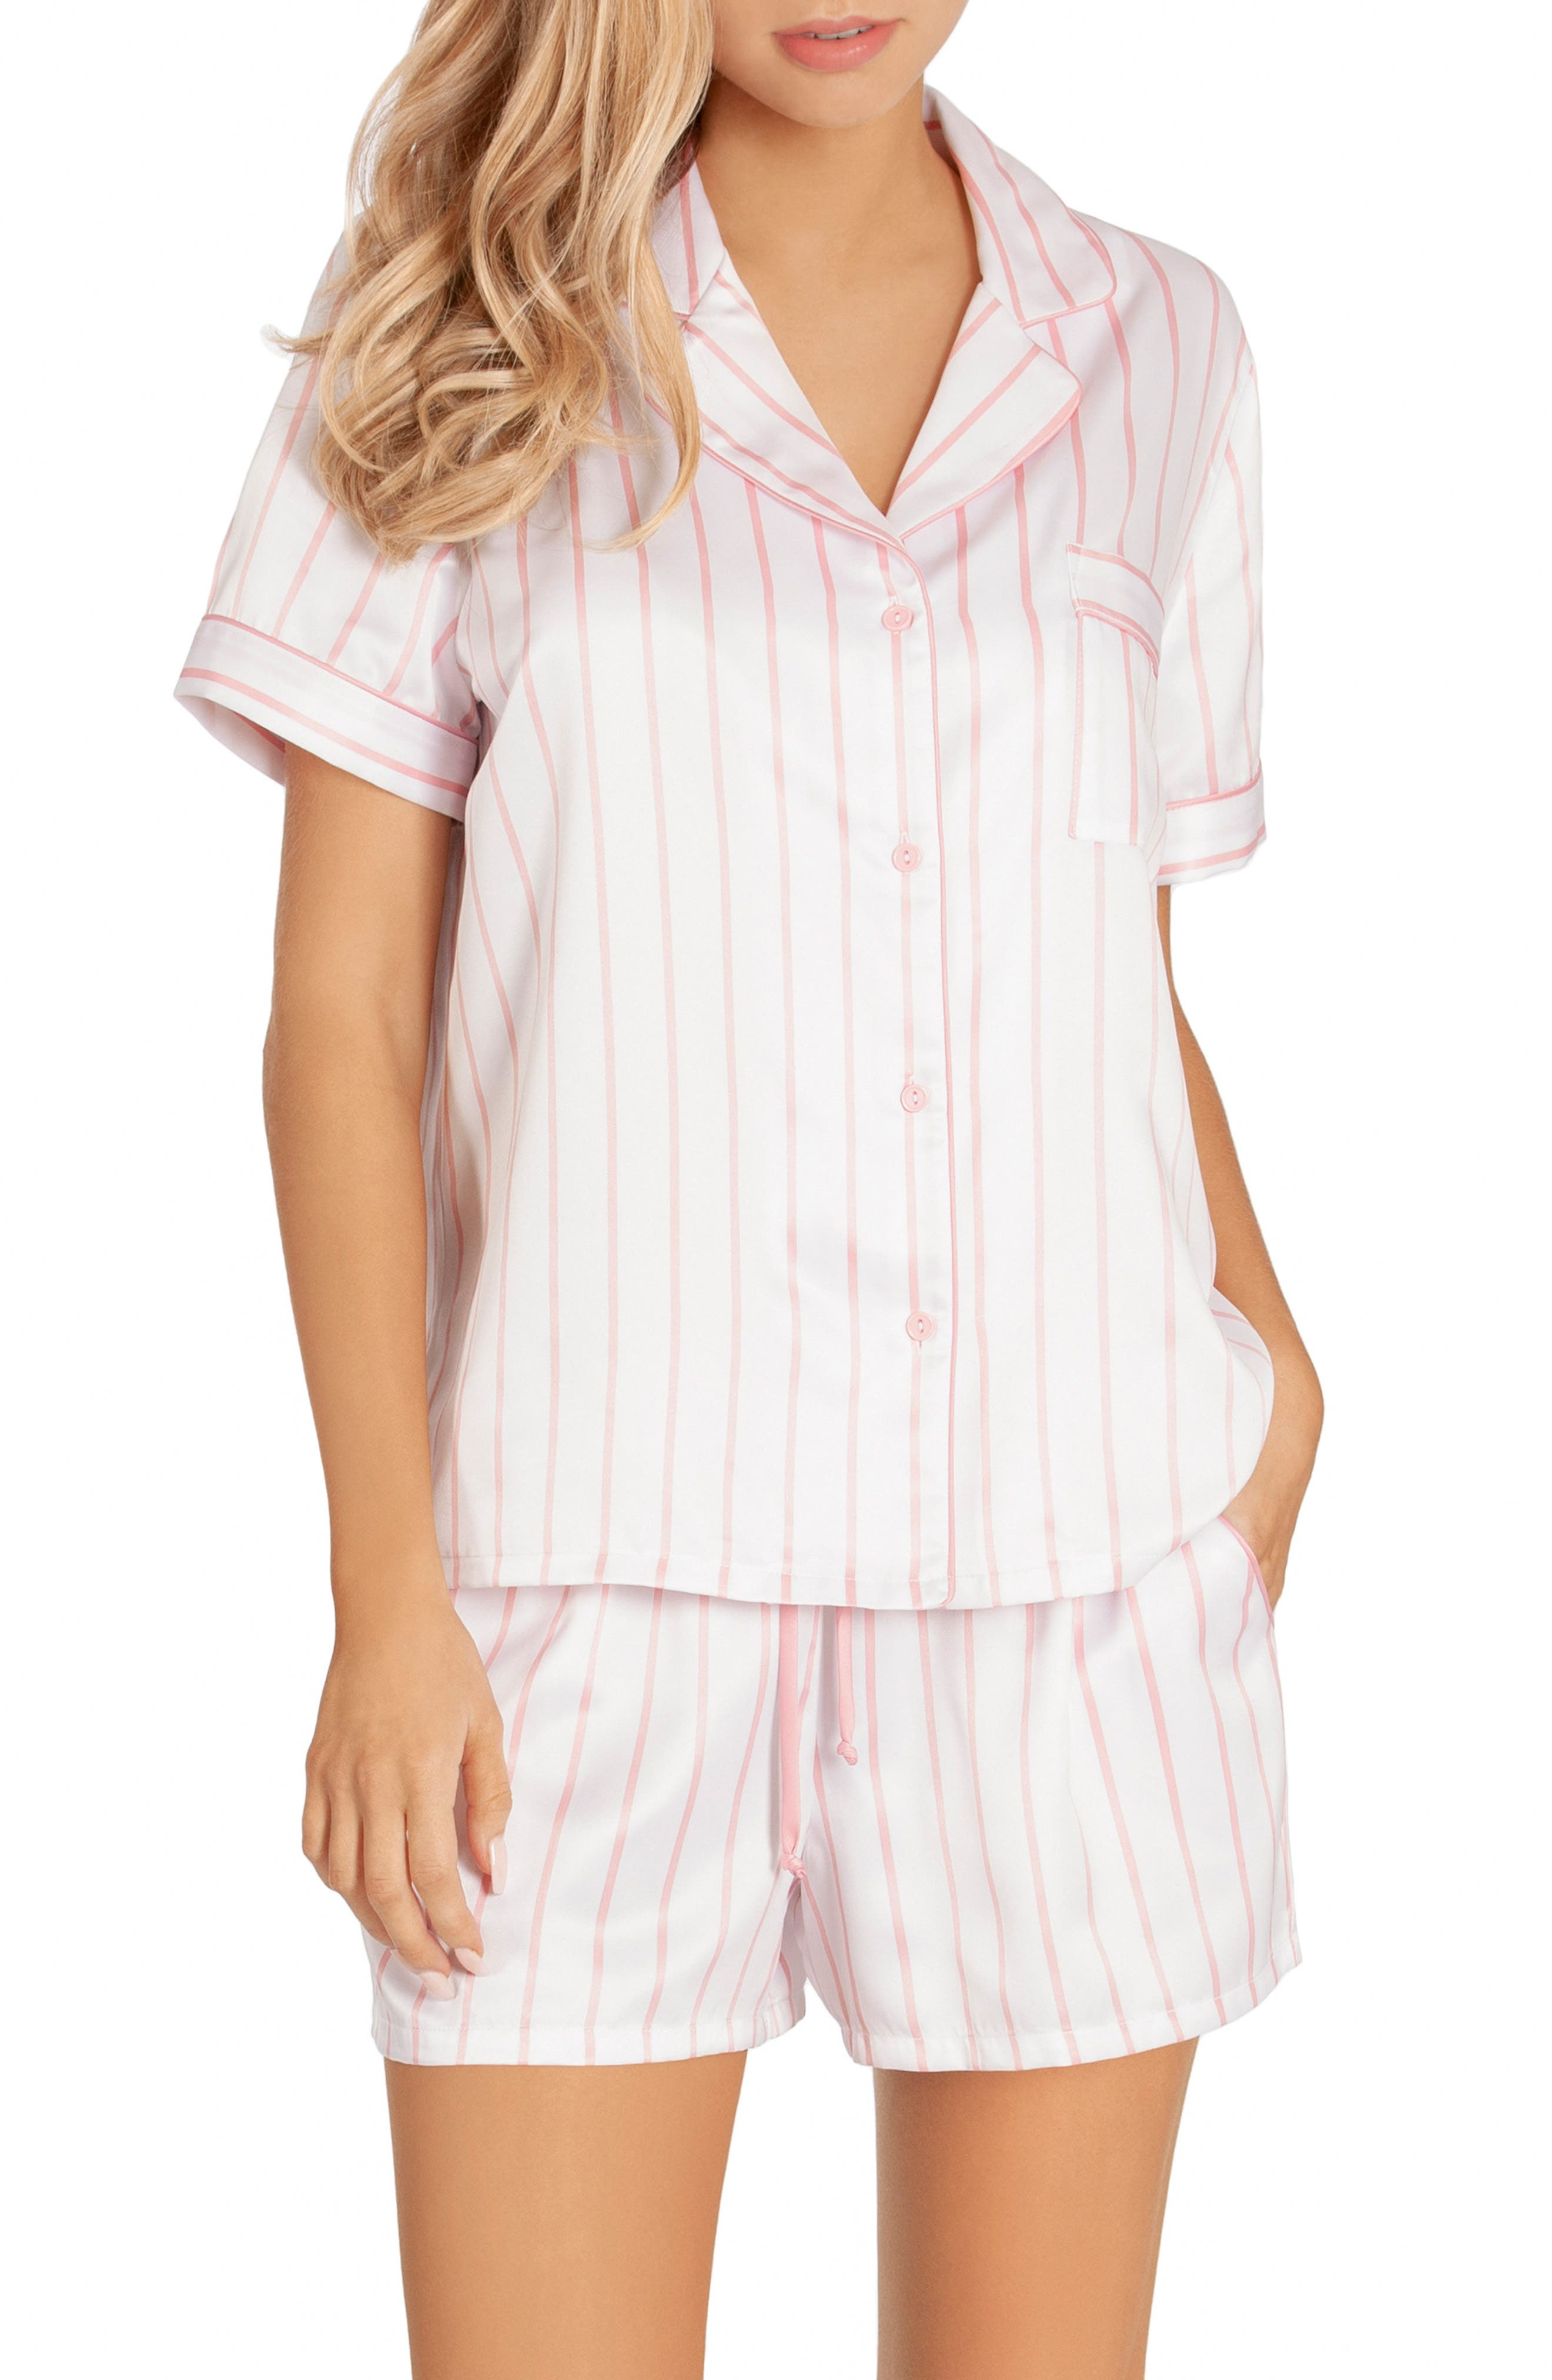 c5c375673 Women s In Bloom By Jonquil Pajama Sets